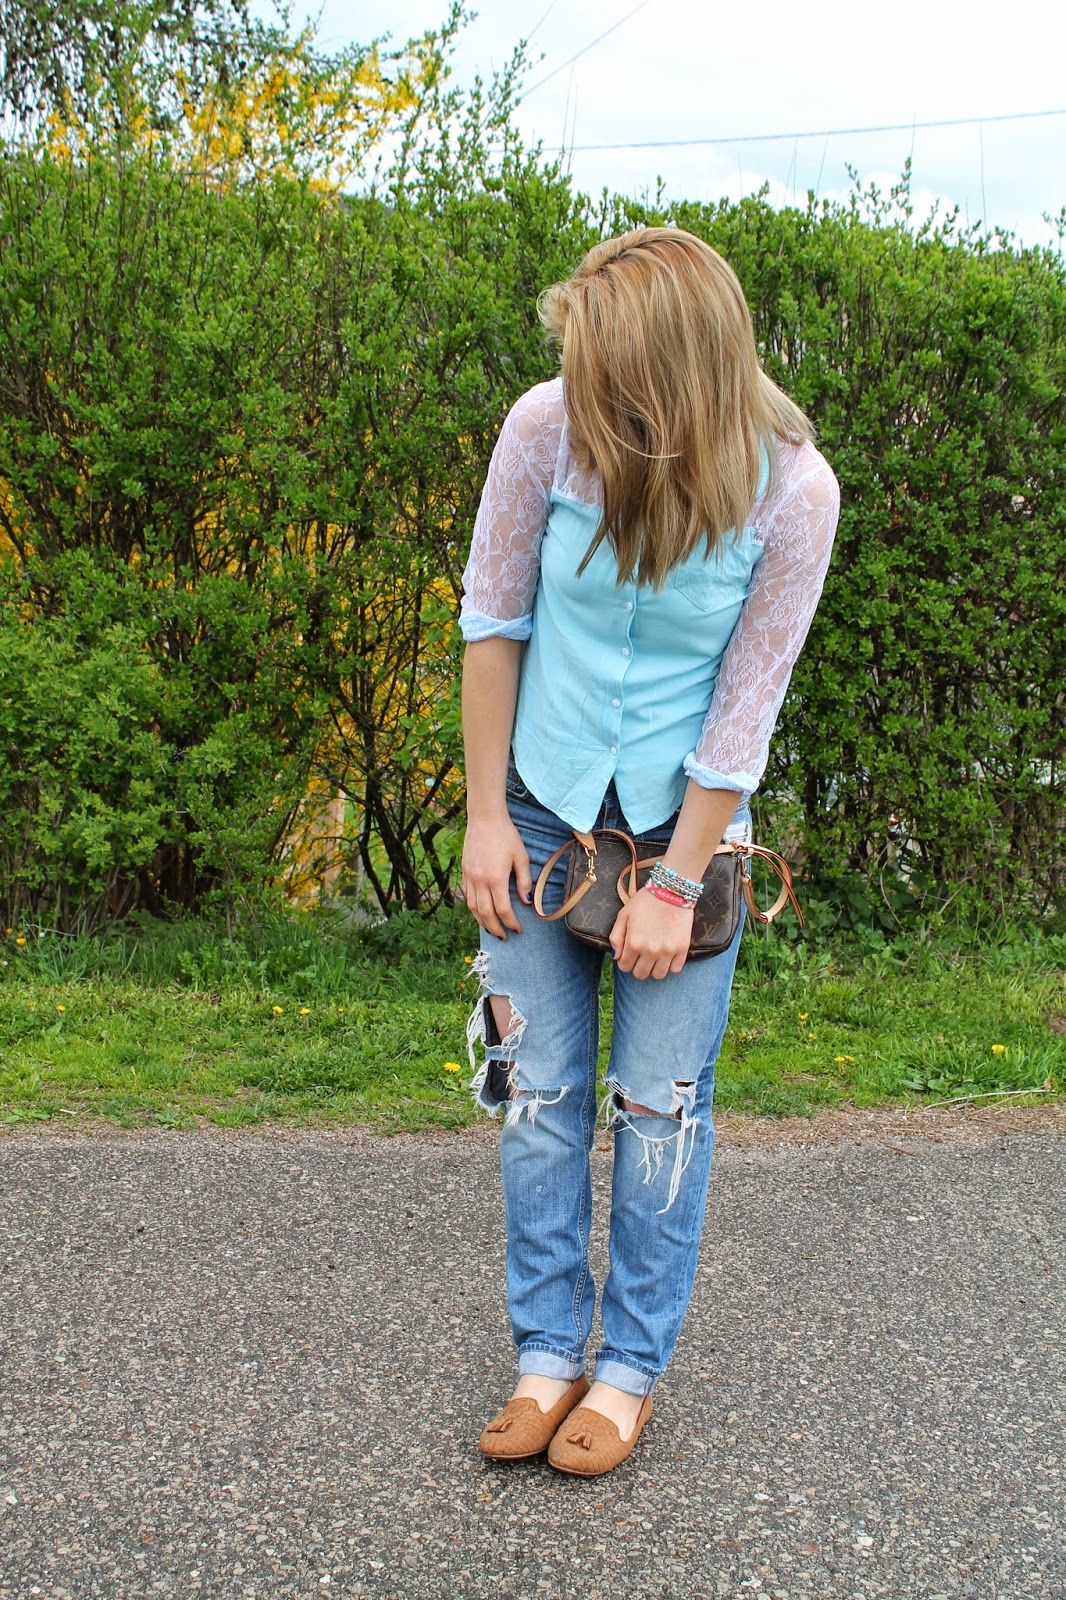 Fashionblogger Austria / Fashionblogger Österreich / Blogger Austria / Blogger Österreich / Kärnten / Carinthia / Köttmannsdorf / Lavender Star / Svetlana / Spring Look / Spring Style / Spring Outift / Blue Blouse Lace / Boyfriend Jeans / Chicnova / H&M / Loafers / Forever 21 / Louis Vuitton / Ernstings Family / Forever 18